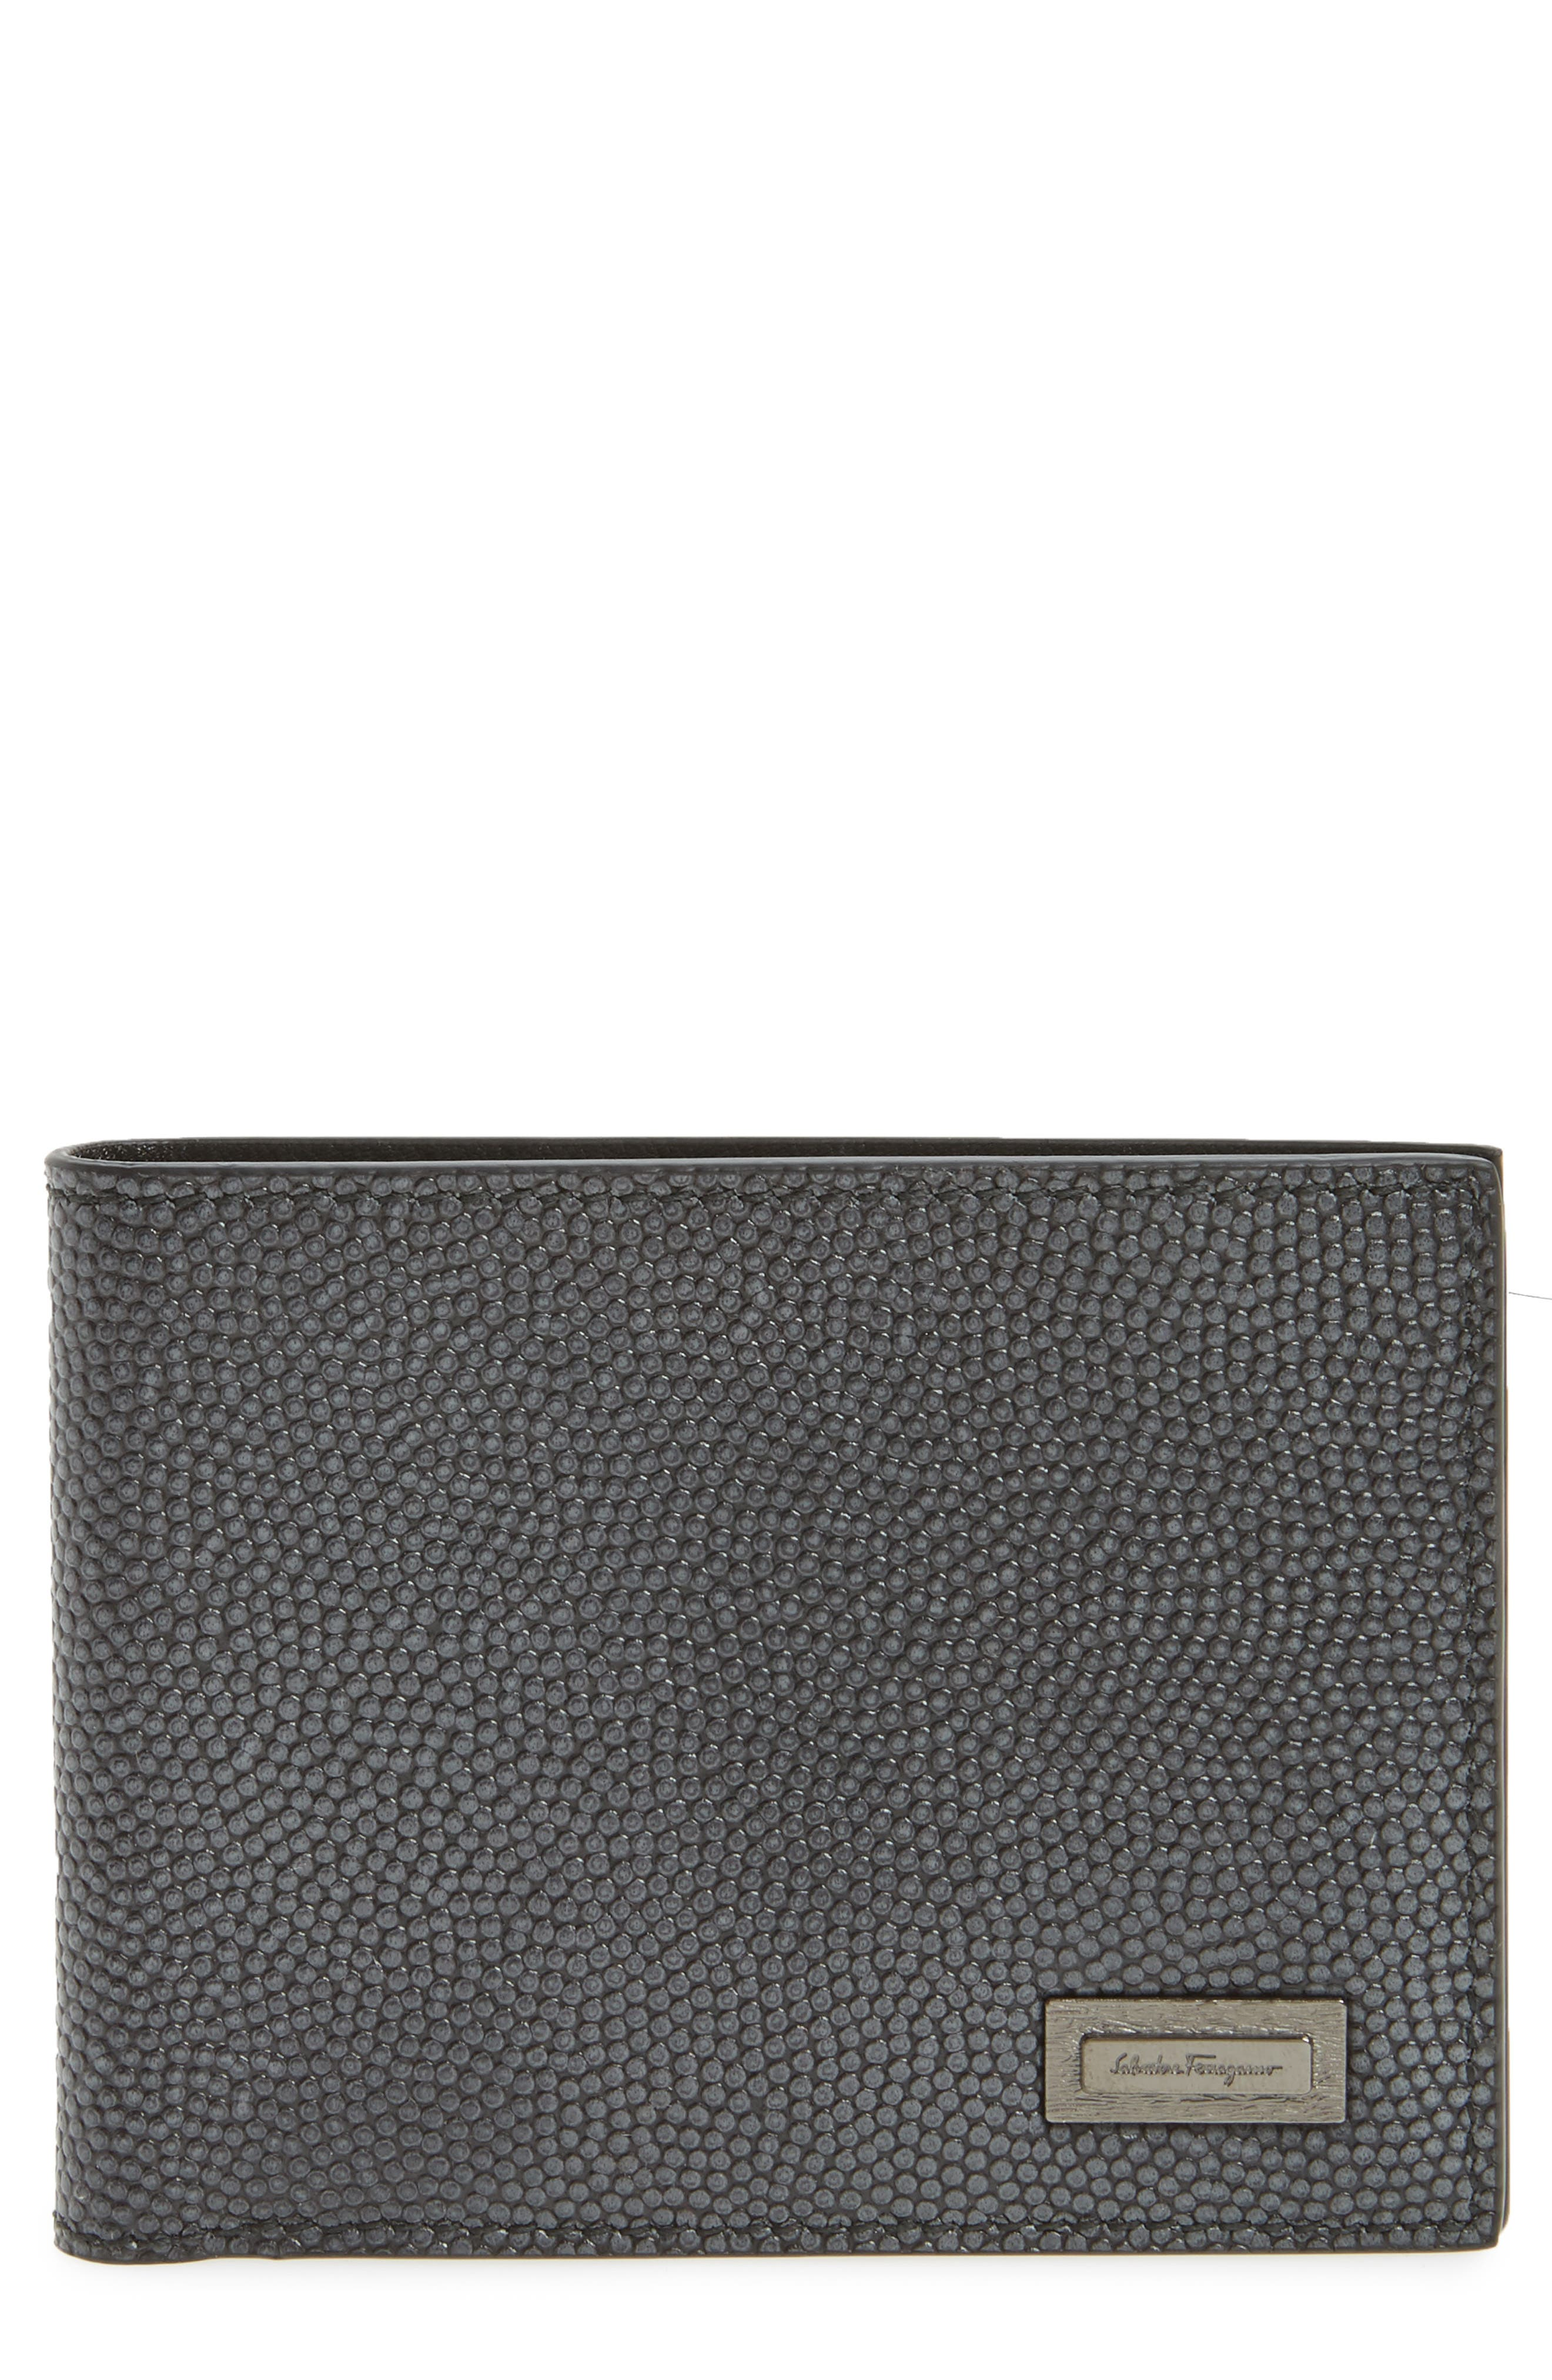 Main Image - Salvatore Ferragamo Leather Bifold Leather